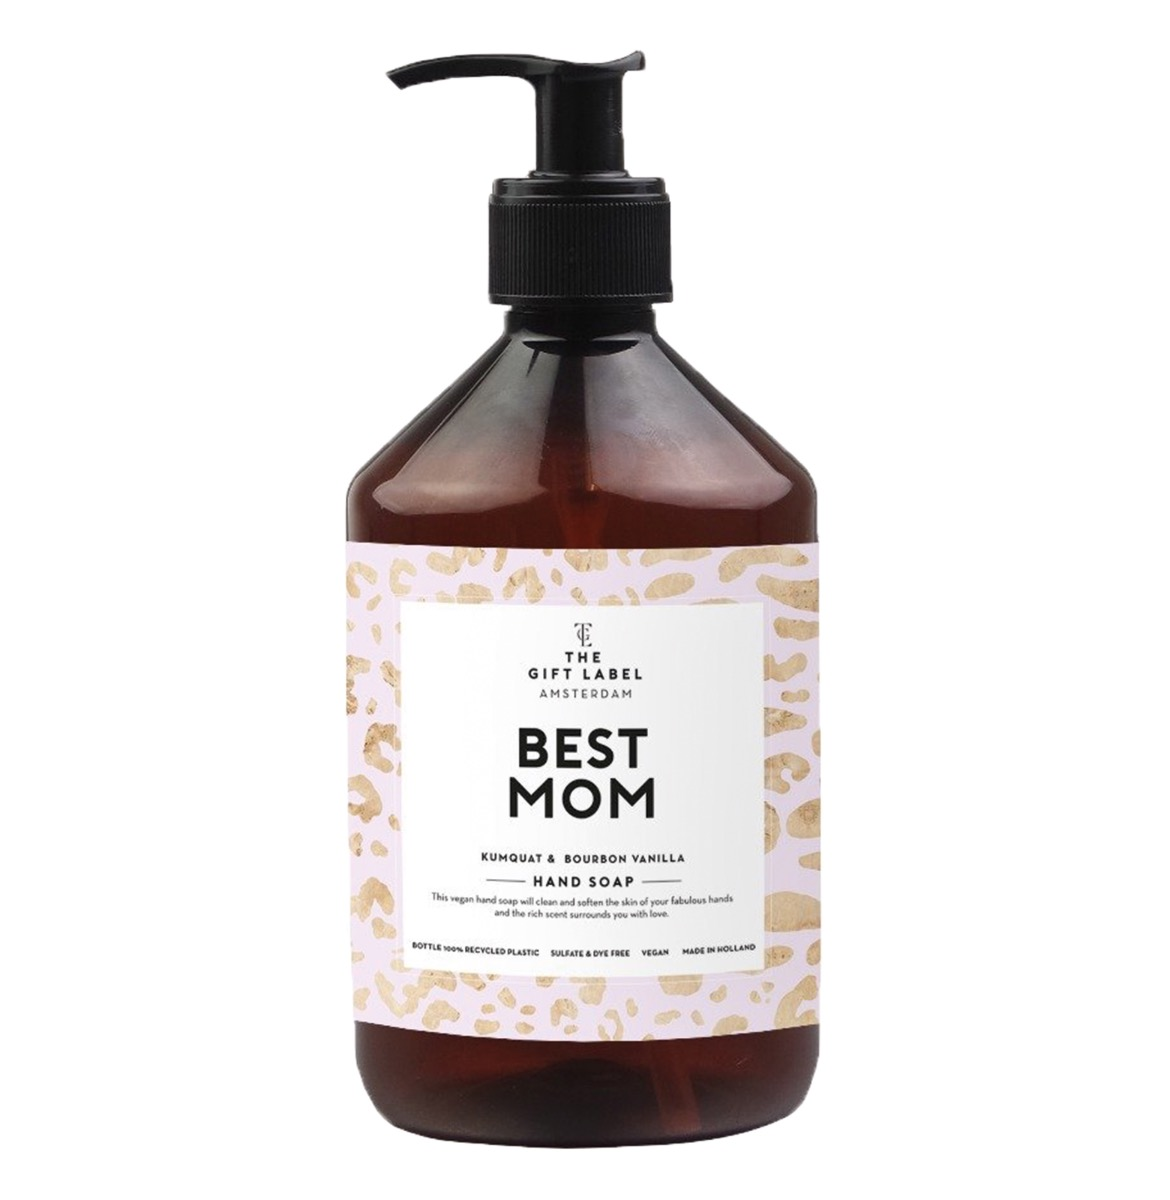 Best Mom - Hand Soap